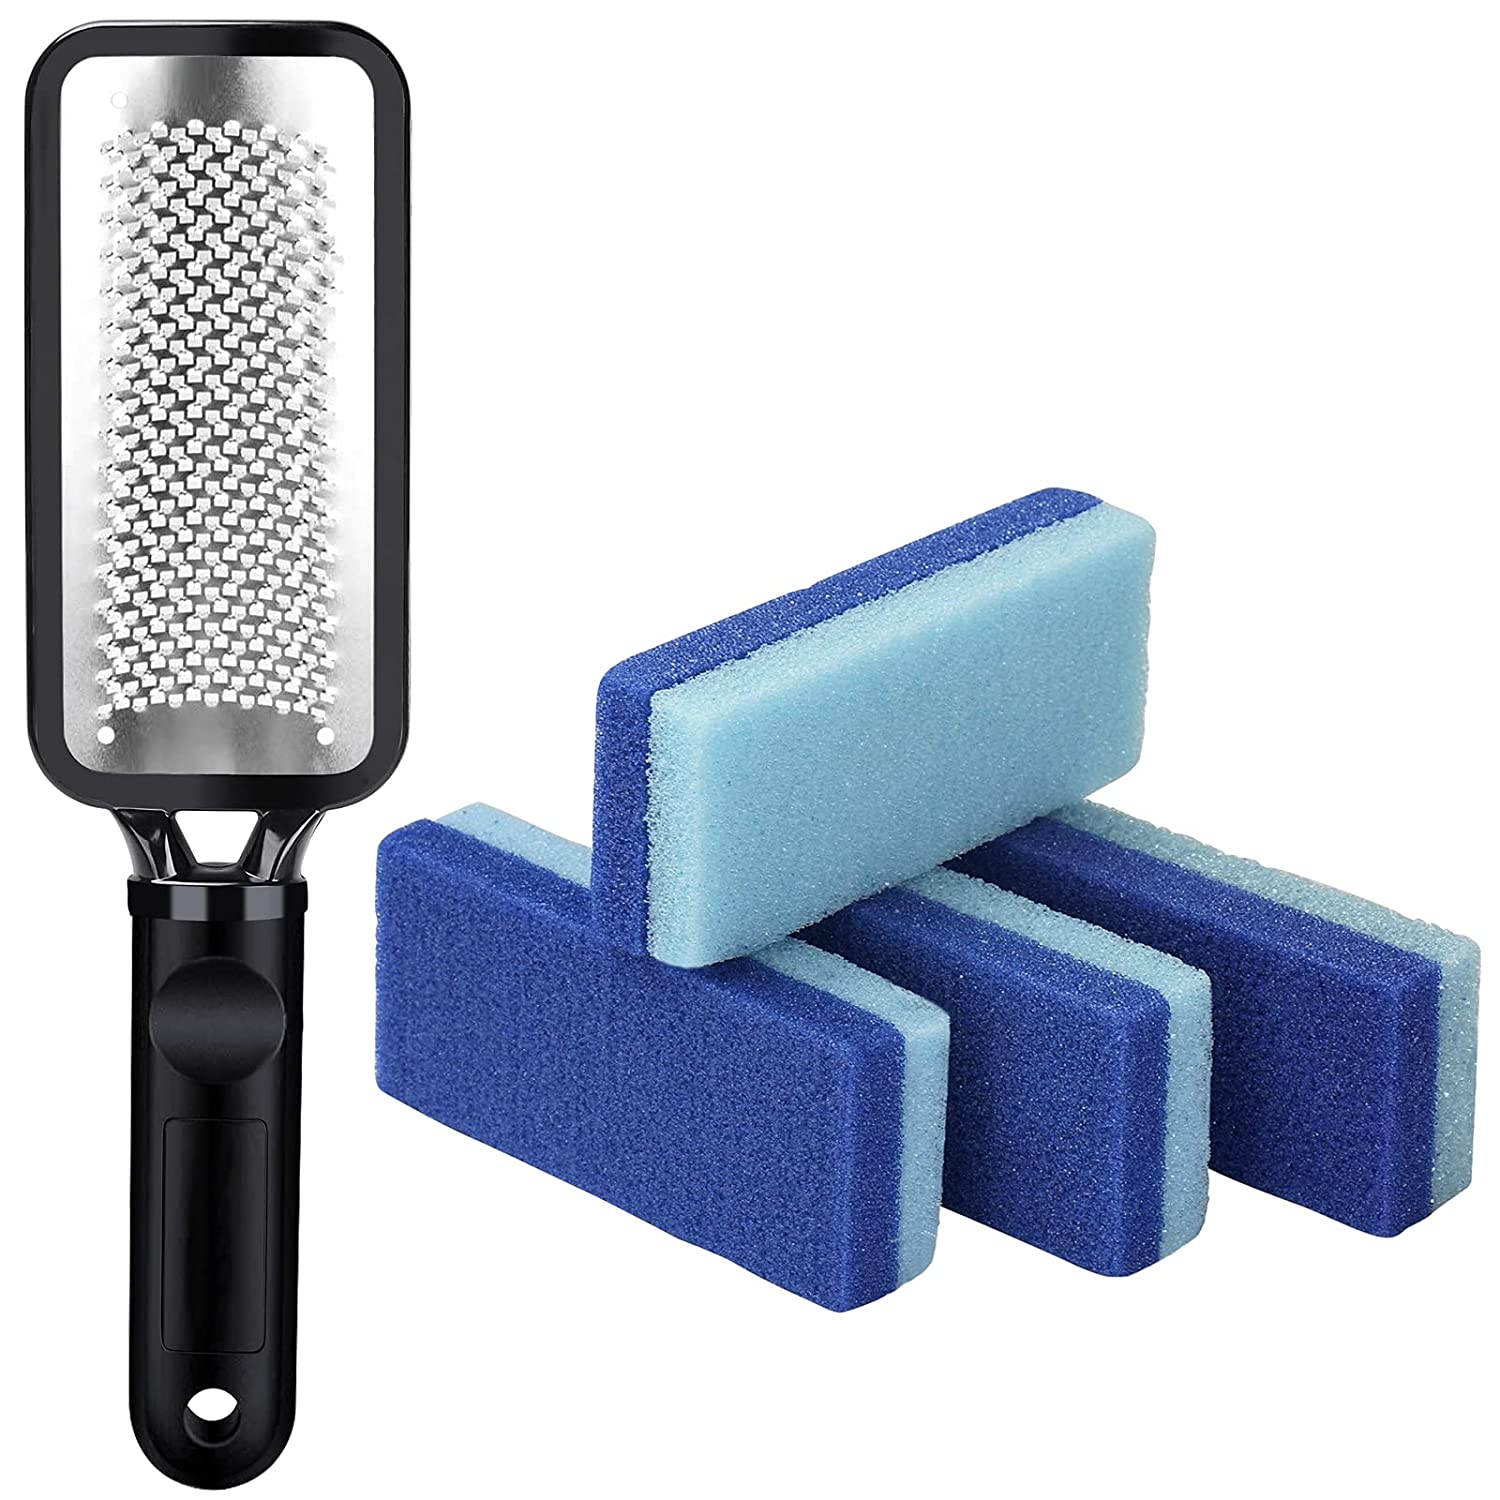 Professional Foot File Fashion Set One and Portable o 4 New life Packs